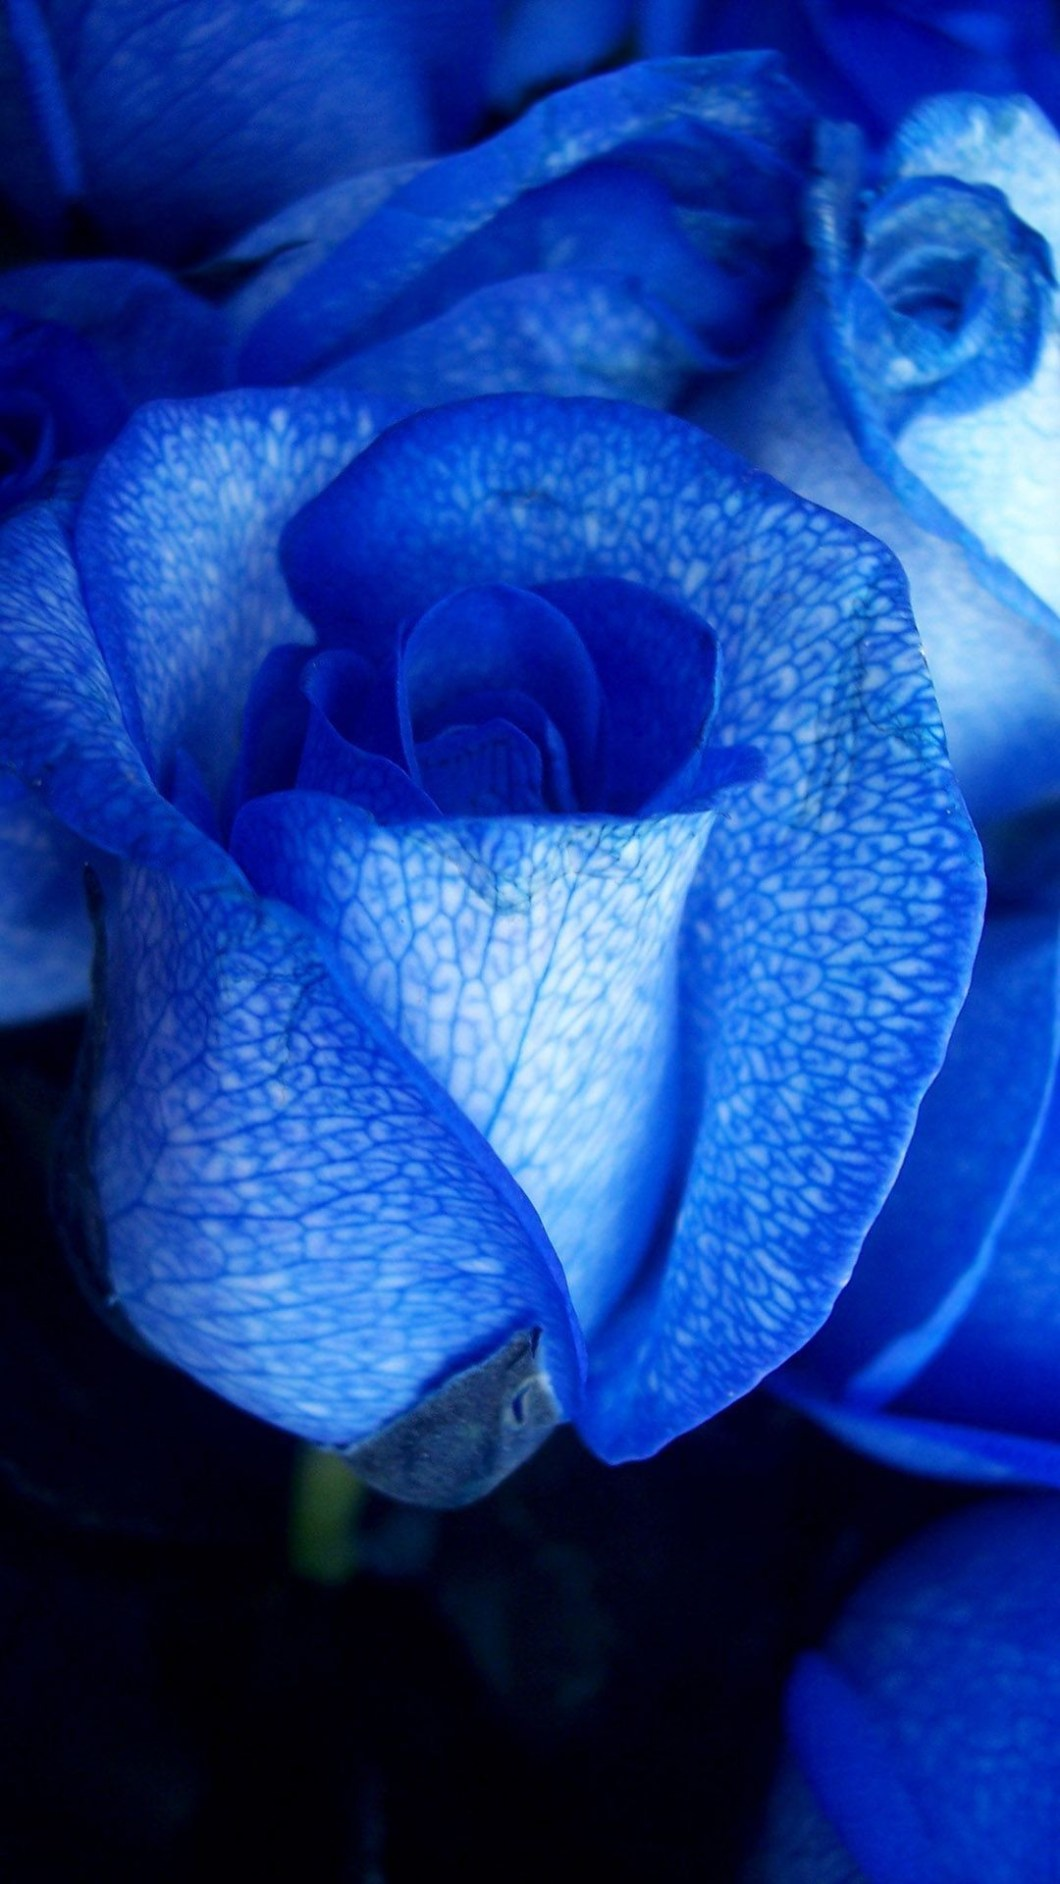 blue rose hd wallpapers for mobile - drive.cheapusedmotorhome